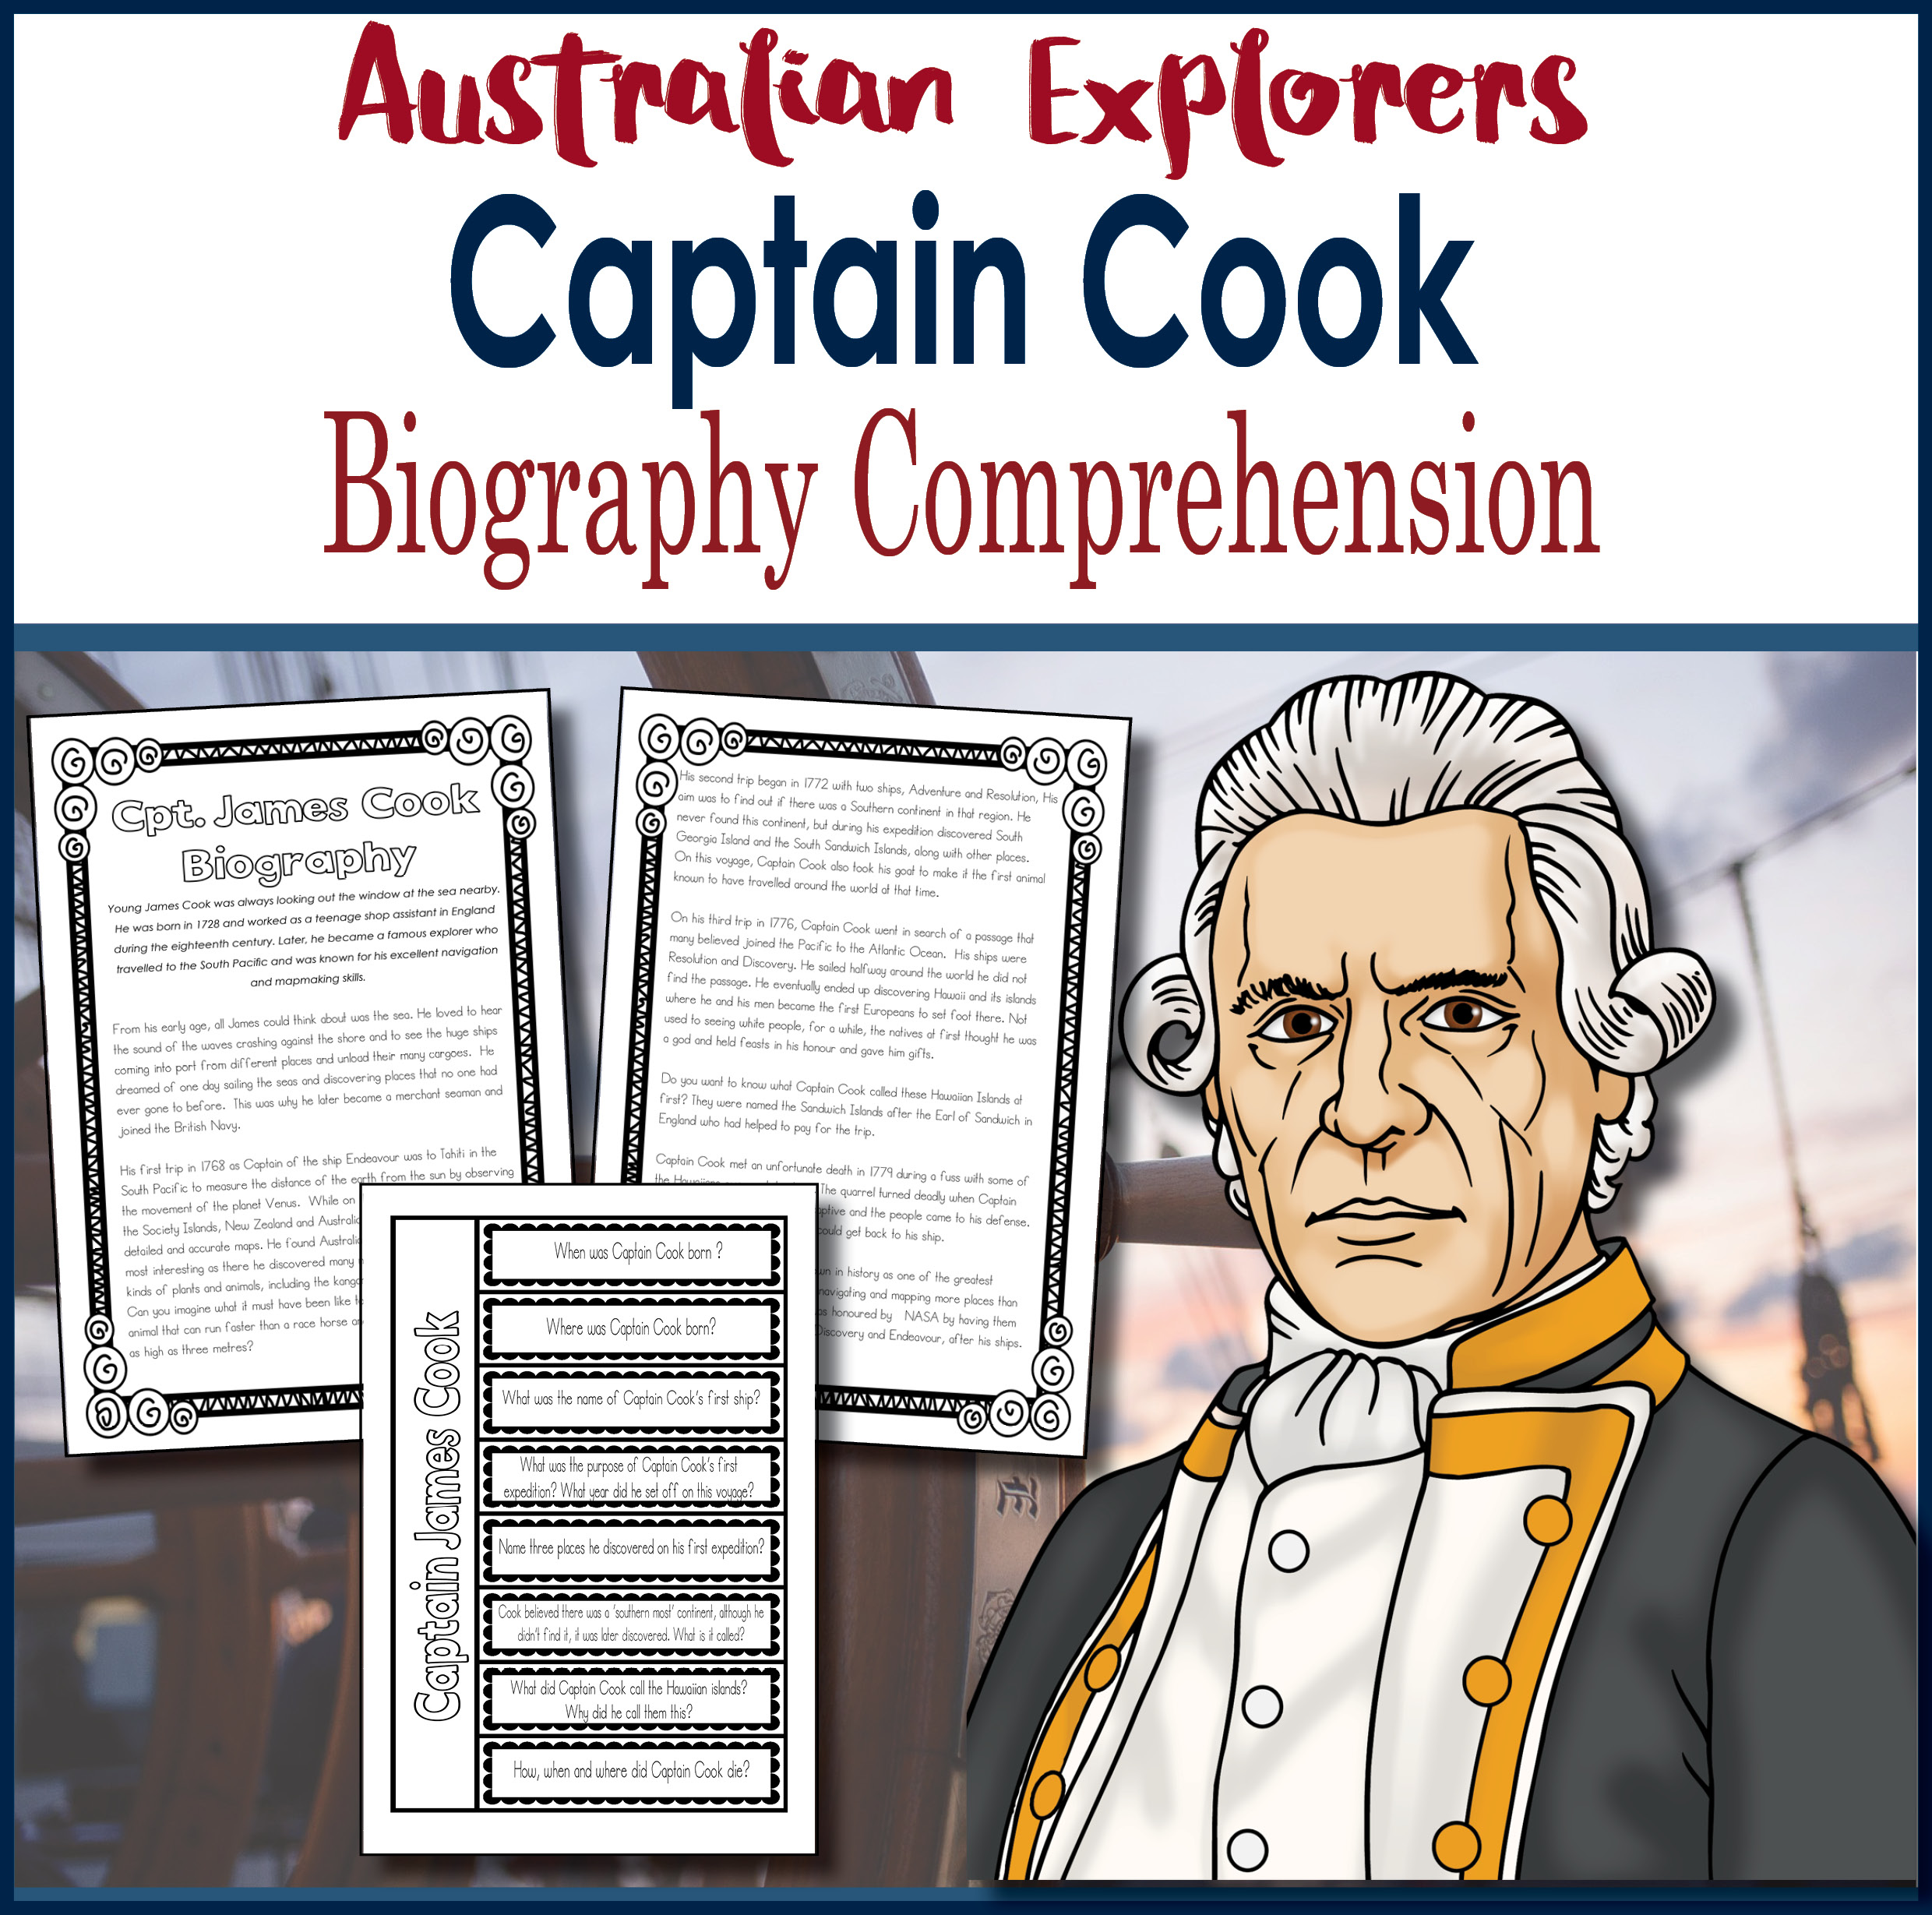 Captain Cook Biography Comprehension Activity